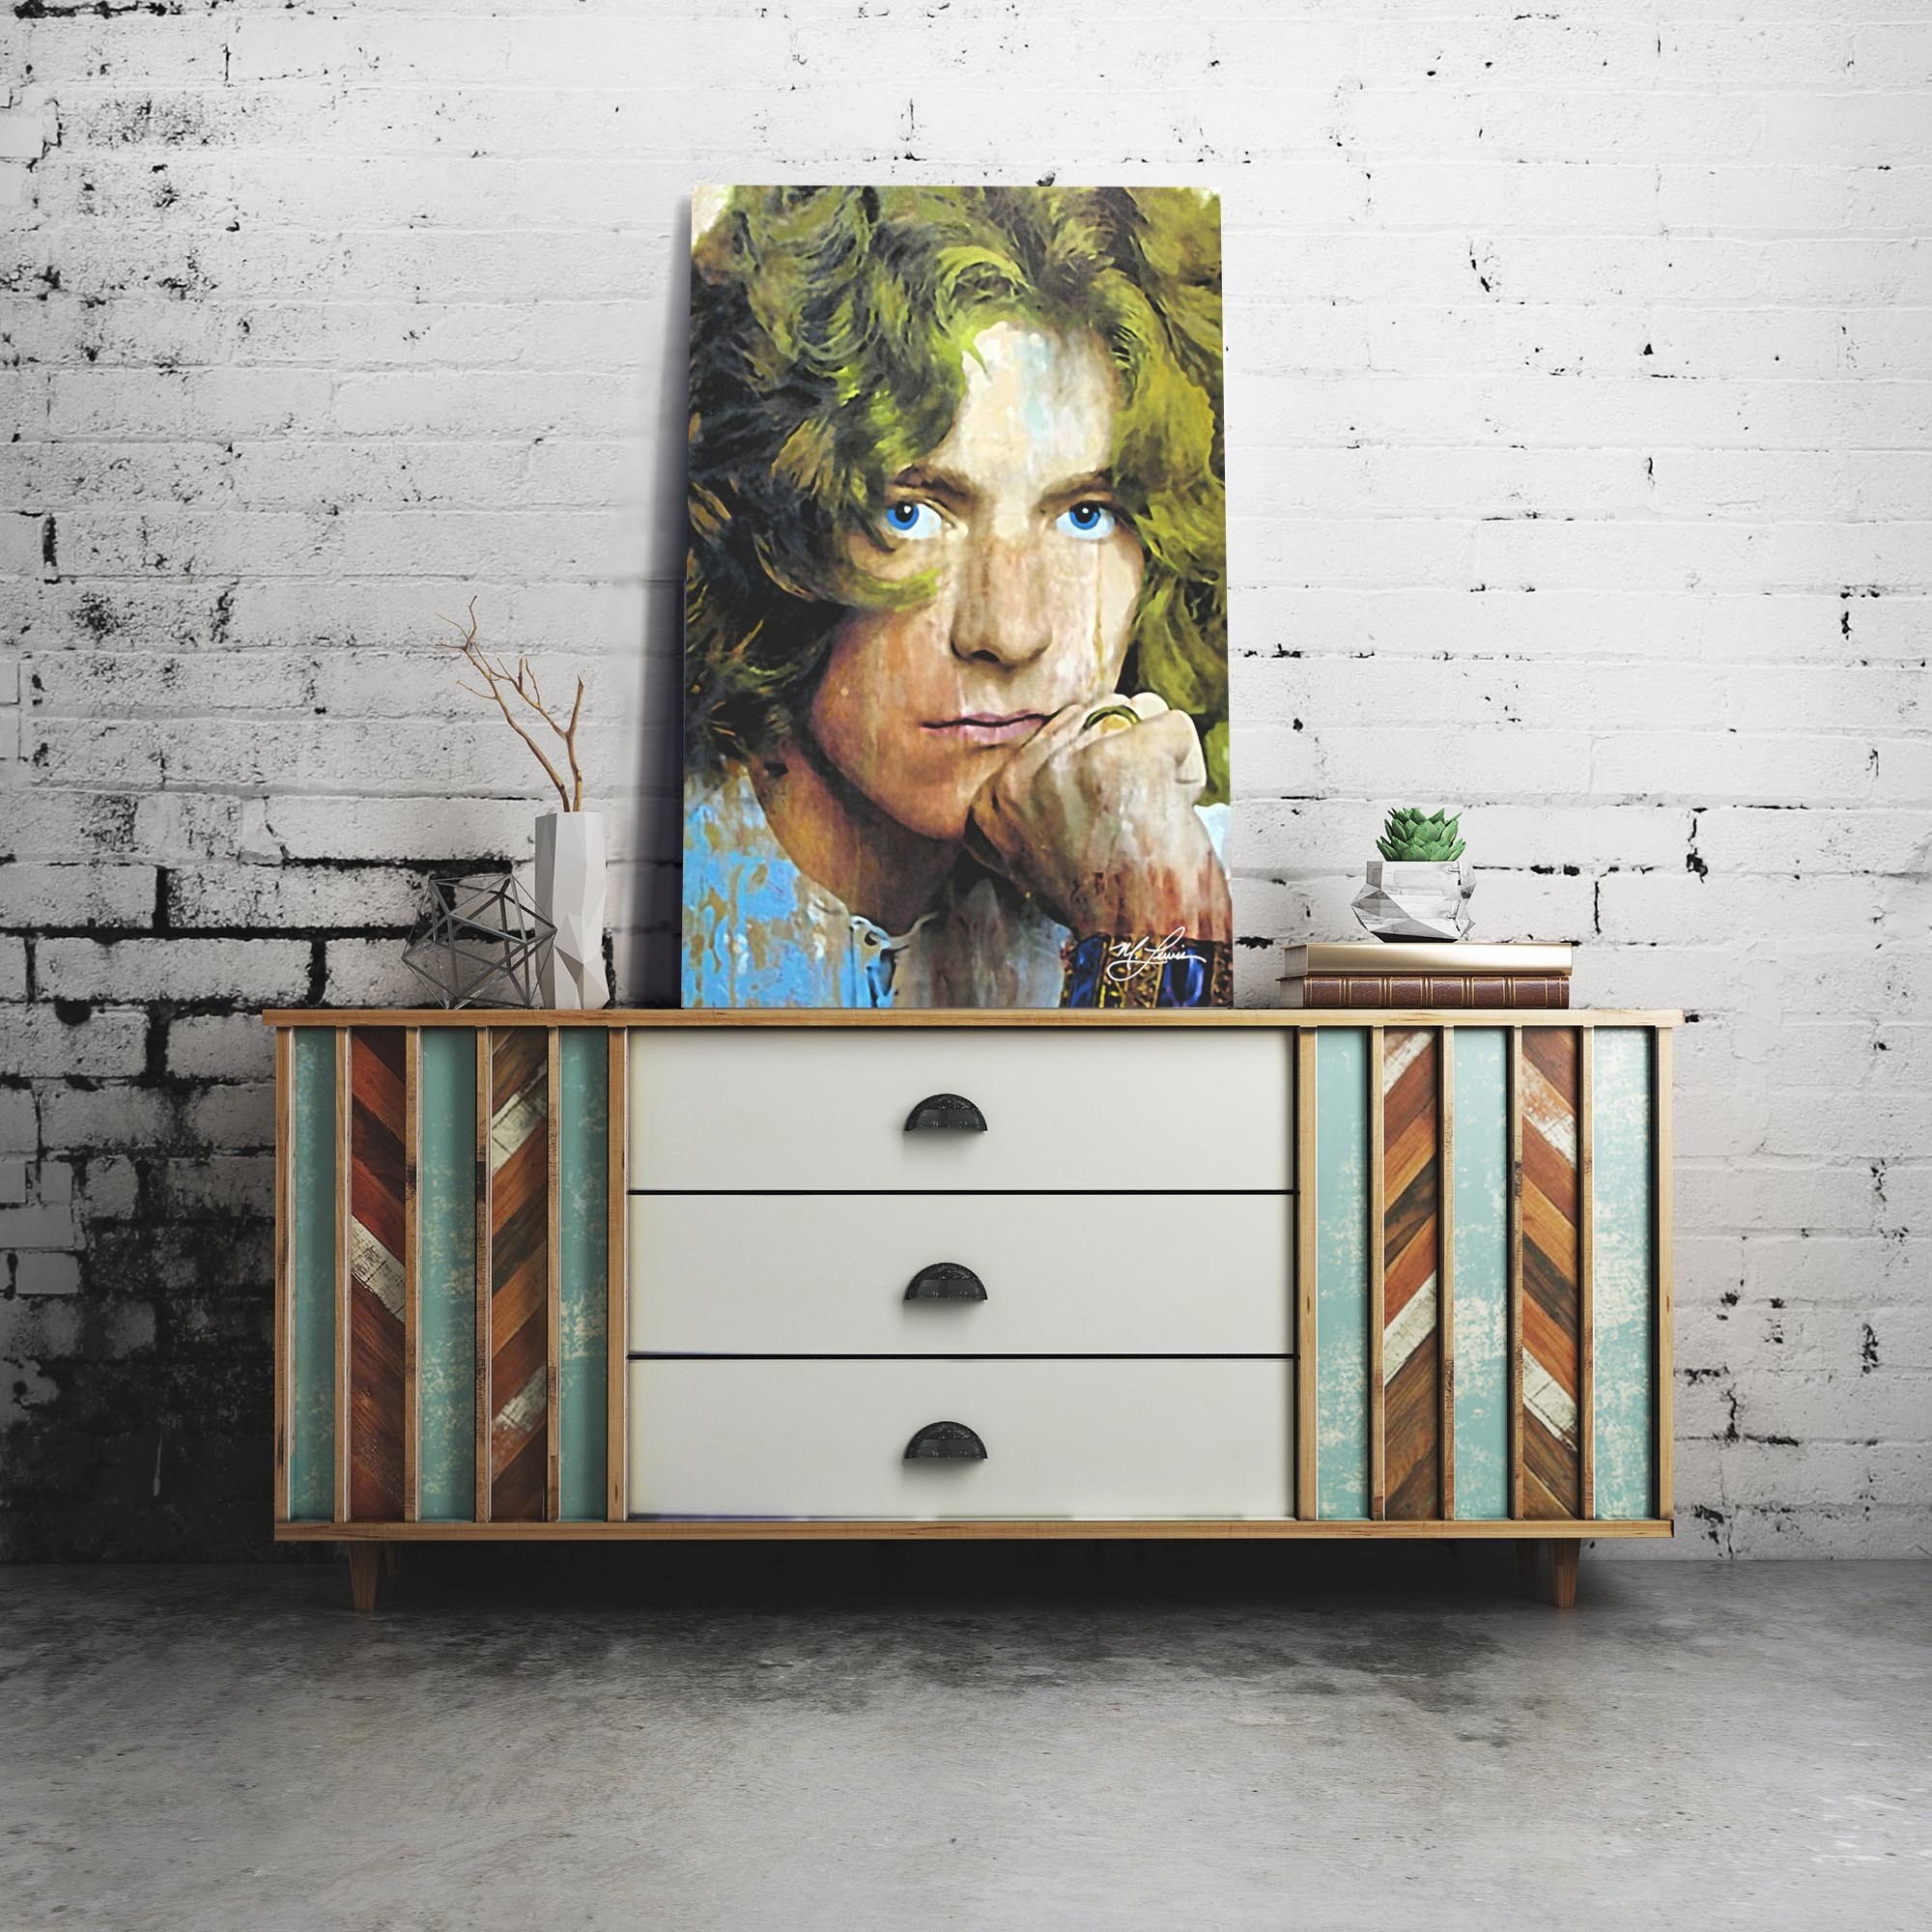 Robert Plant Shear Power by Mark Lewis - Celebrity Pop Art on Metal or Plexiglass - ML0044